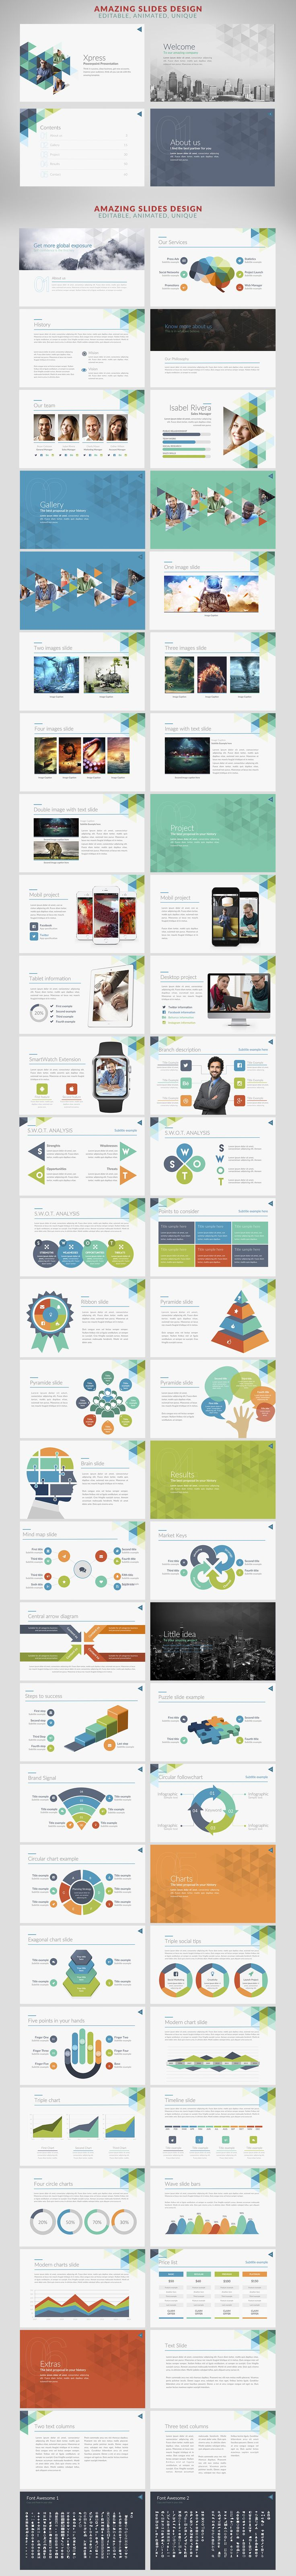 Xpress | Powerpoint templates by Zacomic Studios on @creativemarket